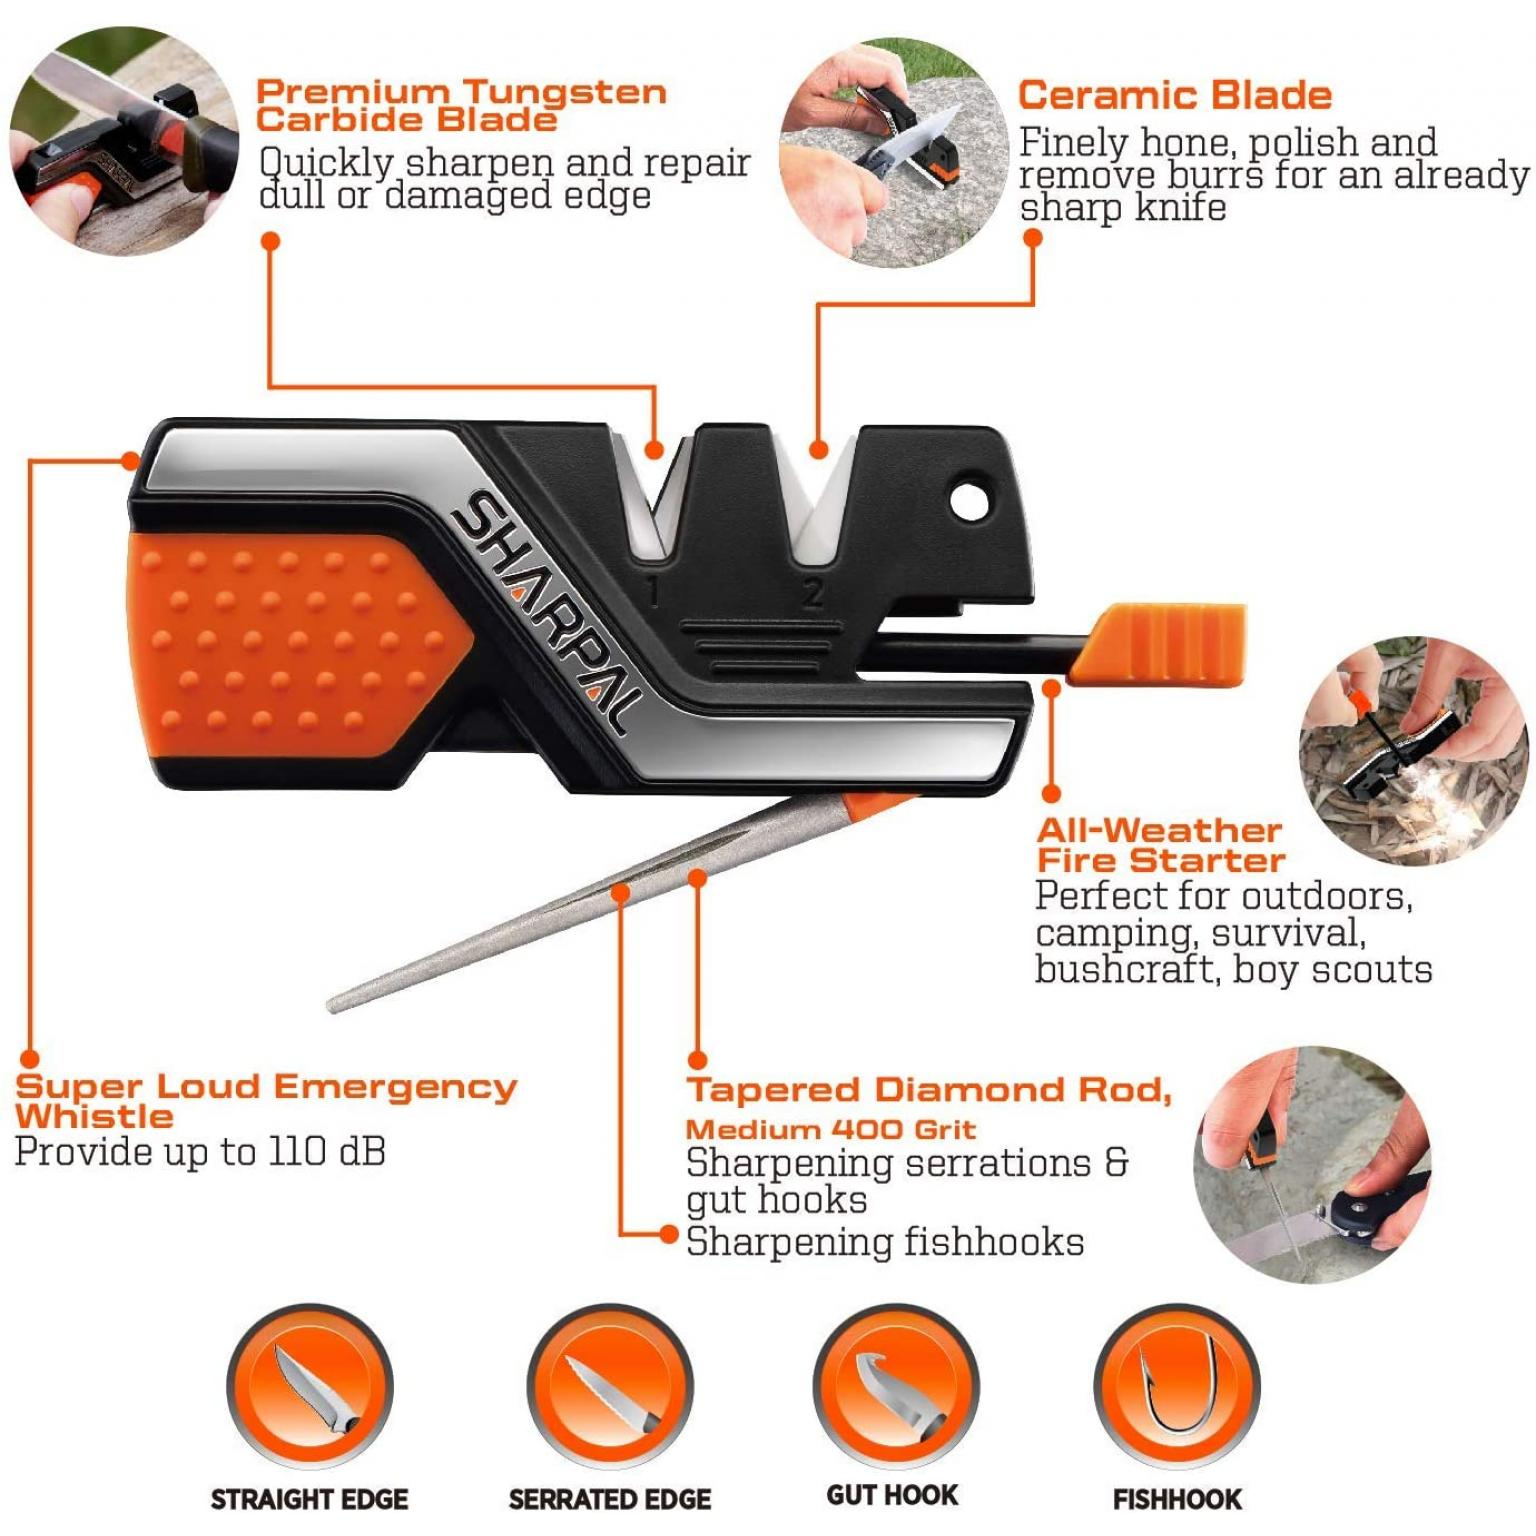 SHARPAL 101N 6-in-1 Pocket Knife Sharpener & Survival Tool, with Fire Starter, Whistle & Diamond Sharpening Rod, Quickly Repair, Restore and Hone Straight and Serrated Blade